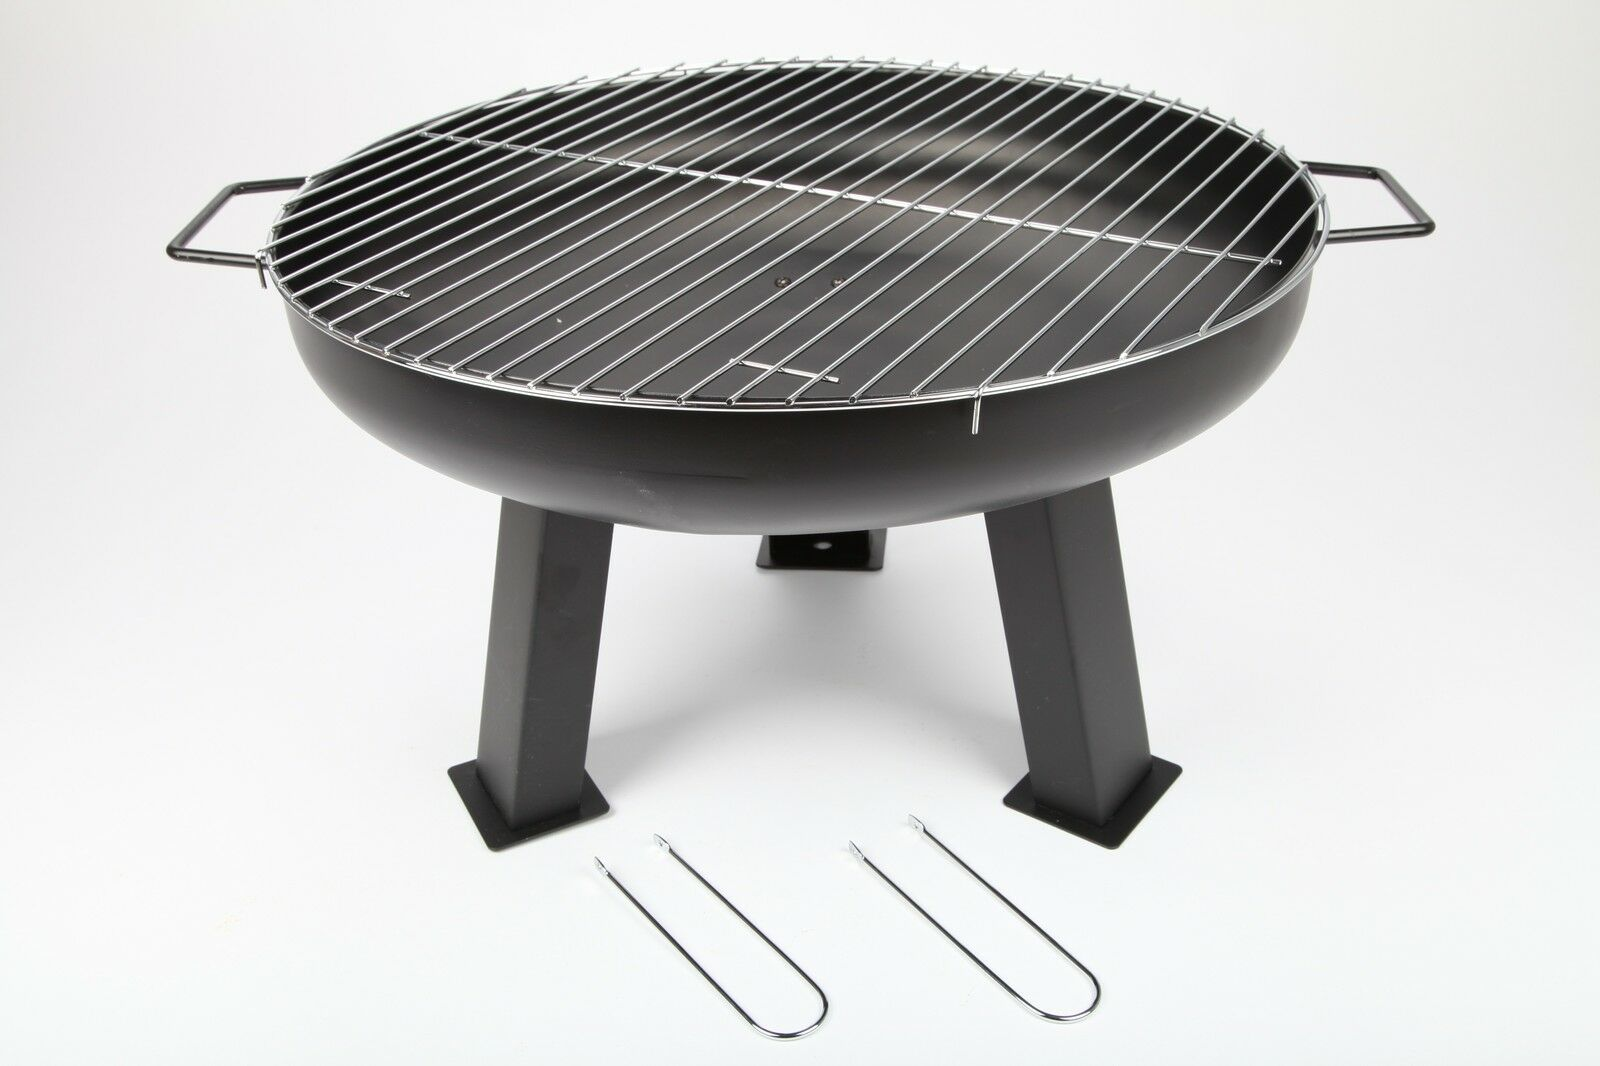 vasque feu 60 cm barbecue barbecue de jardin neuf eur 68 80 picclick fr. Black Bedroom Furniture Sets. Home Design Ideas